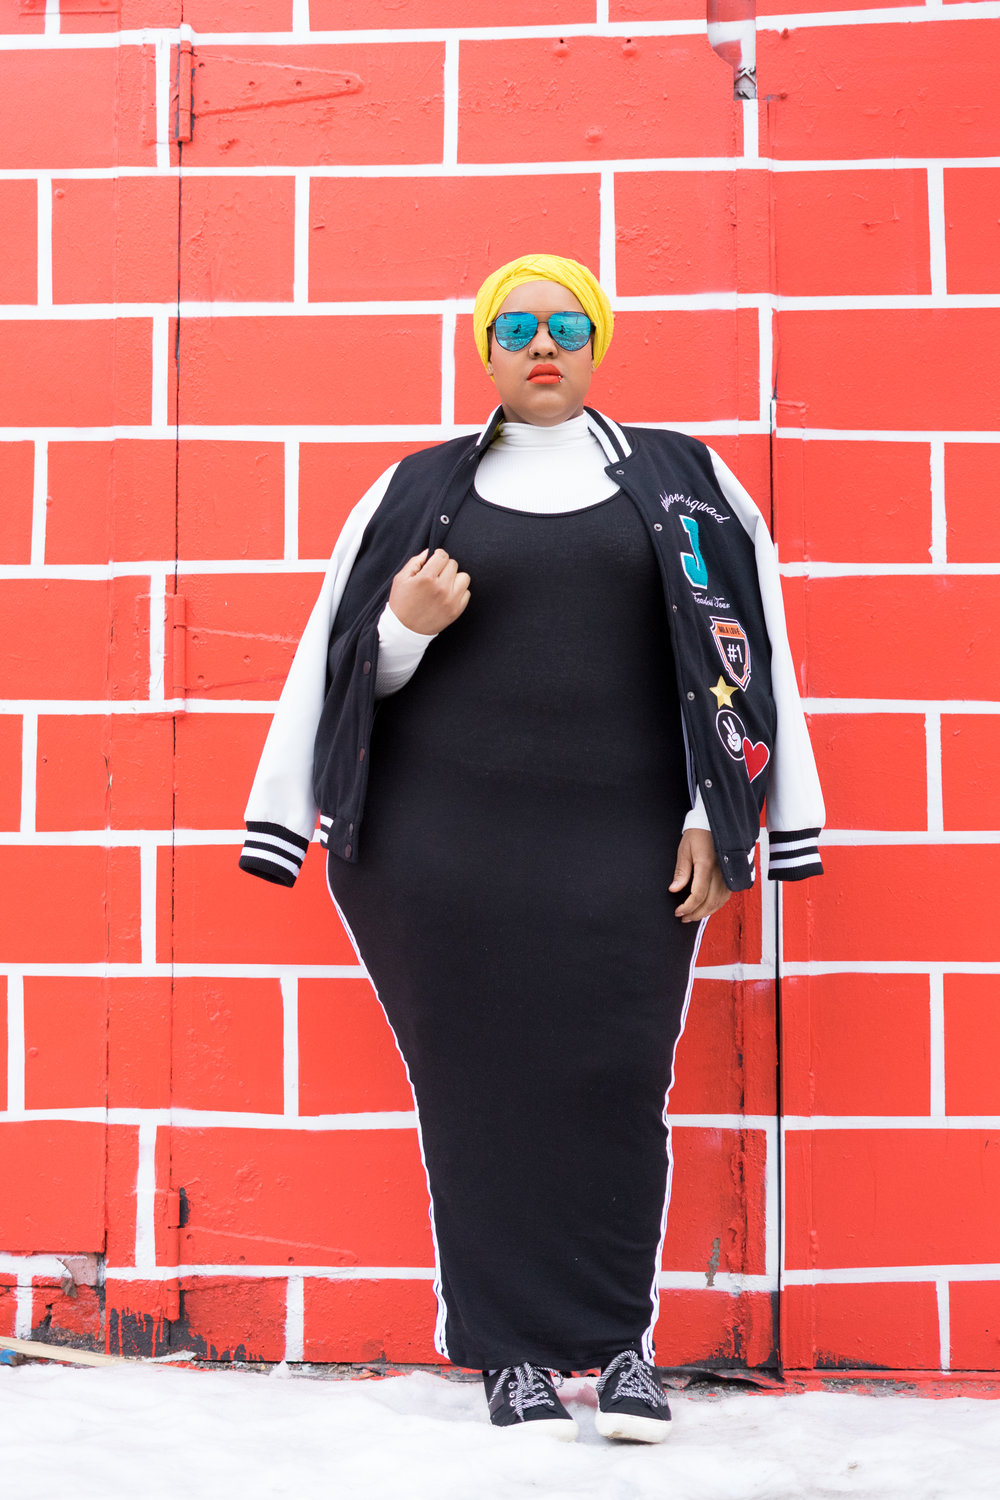 Shades:  DIFF Eyewear  + Jacket:  Addition Elle  + Dress:  REBDOLLS